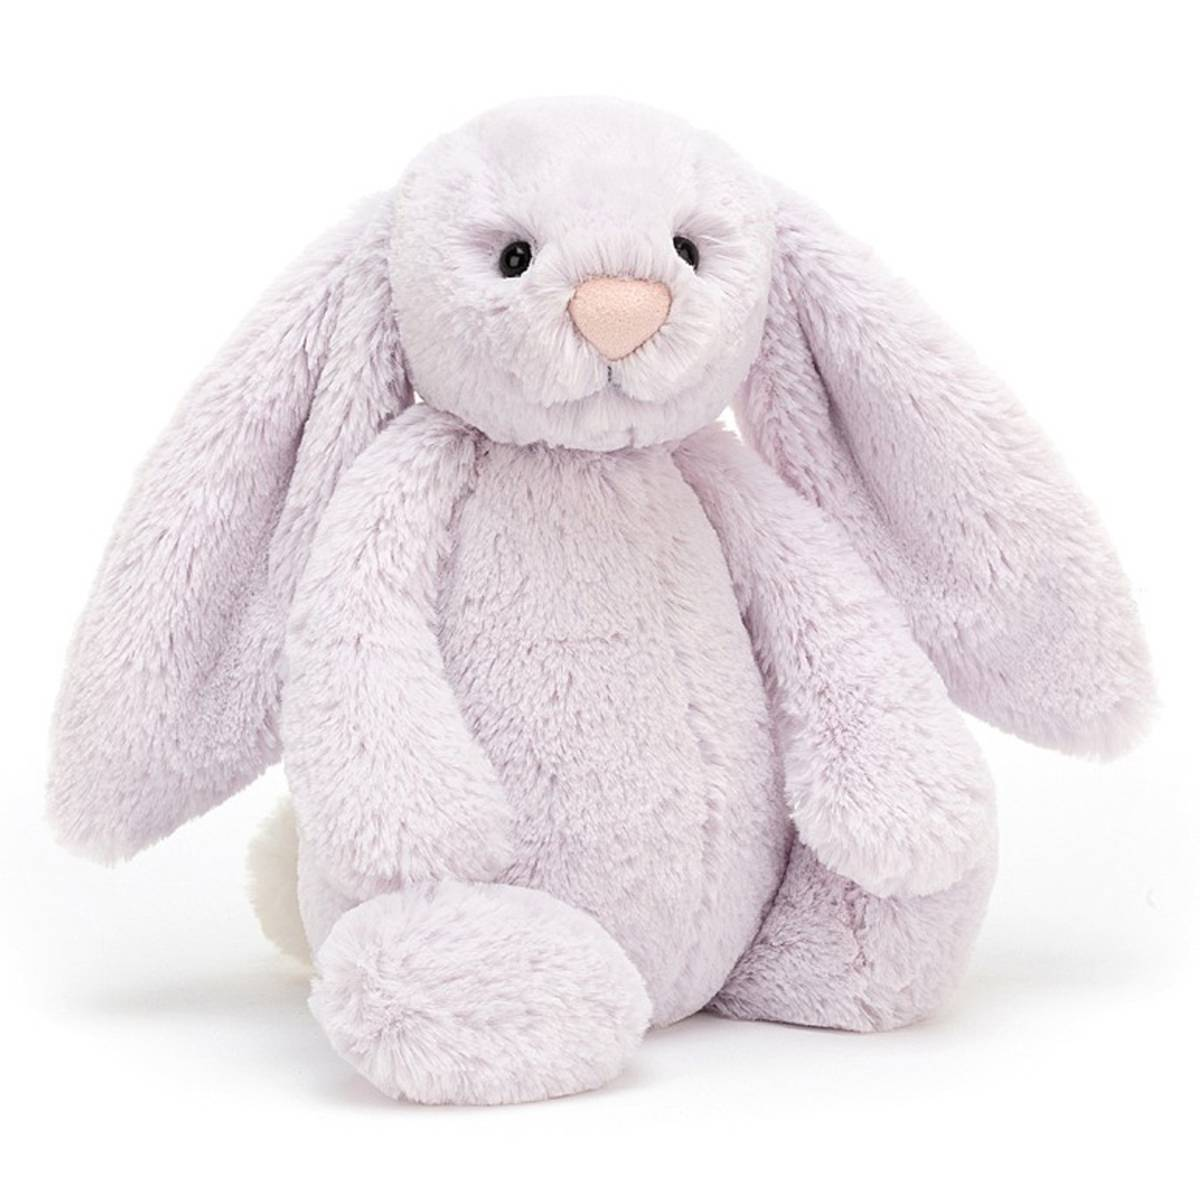 Jellycat Bashful Lavender Bunny - Medium